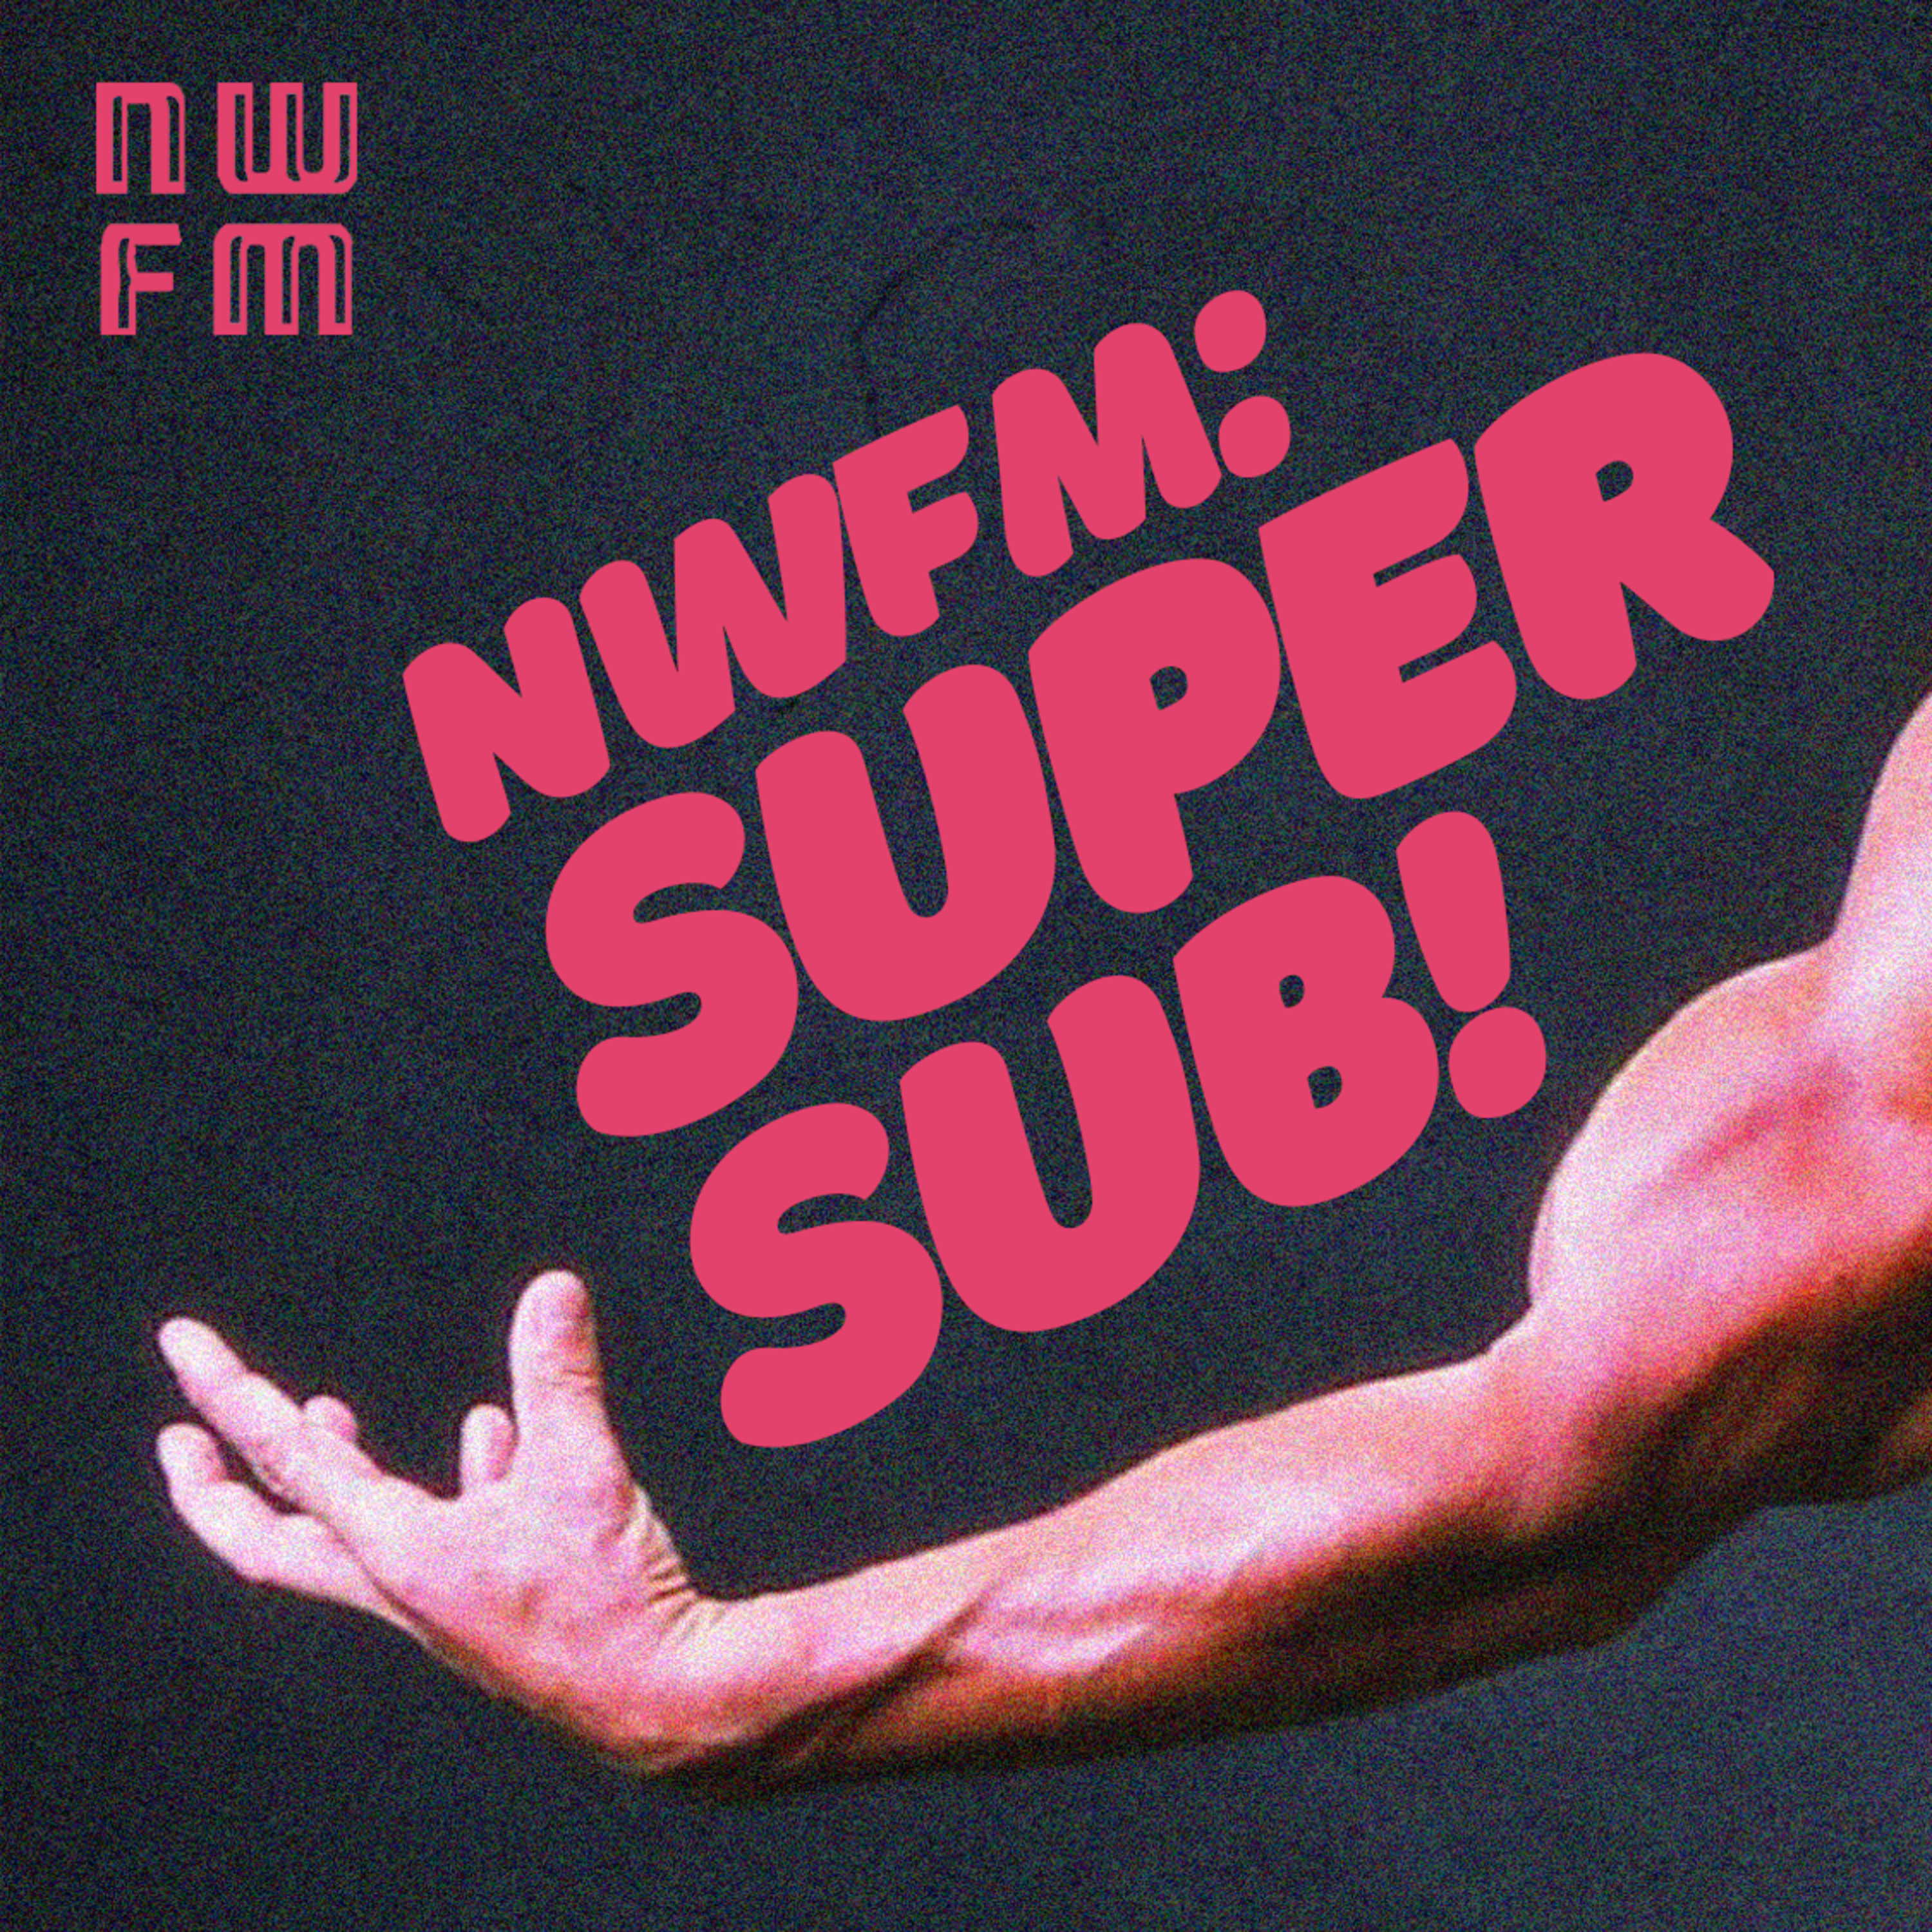 NWFM: Supersub!